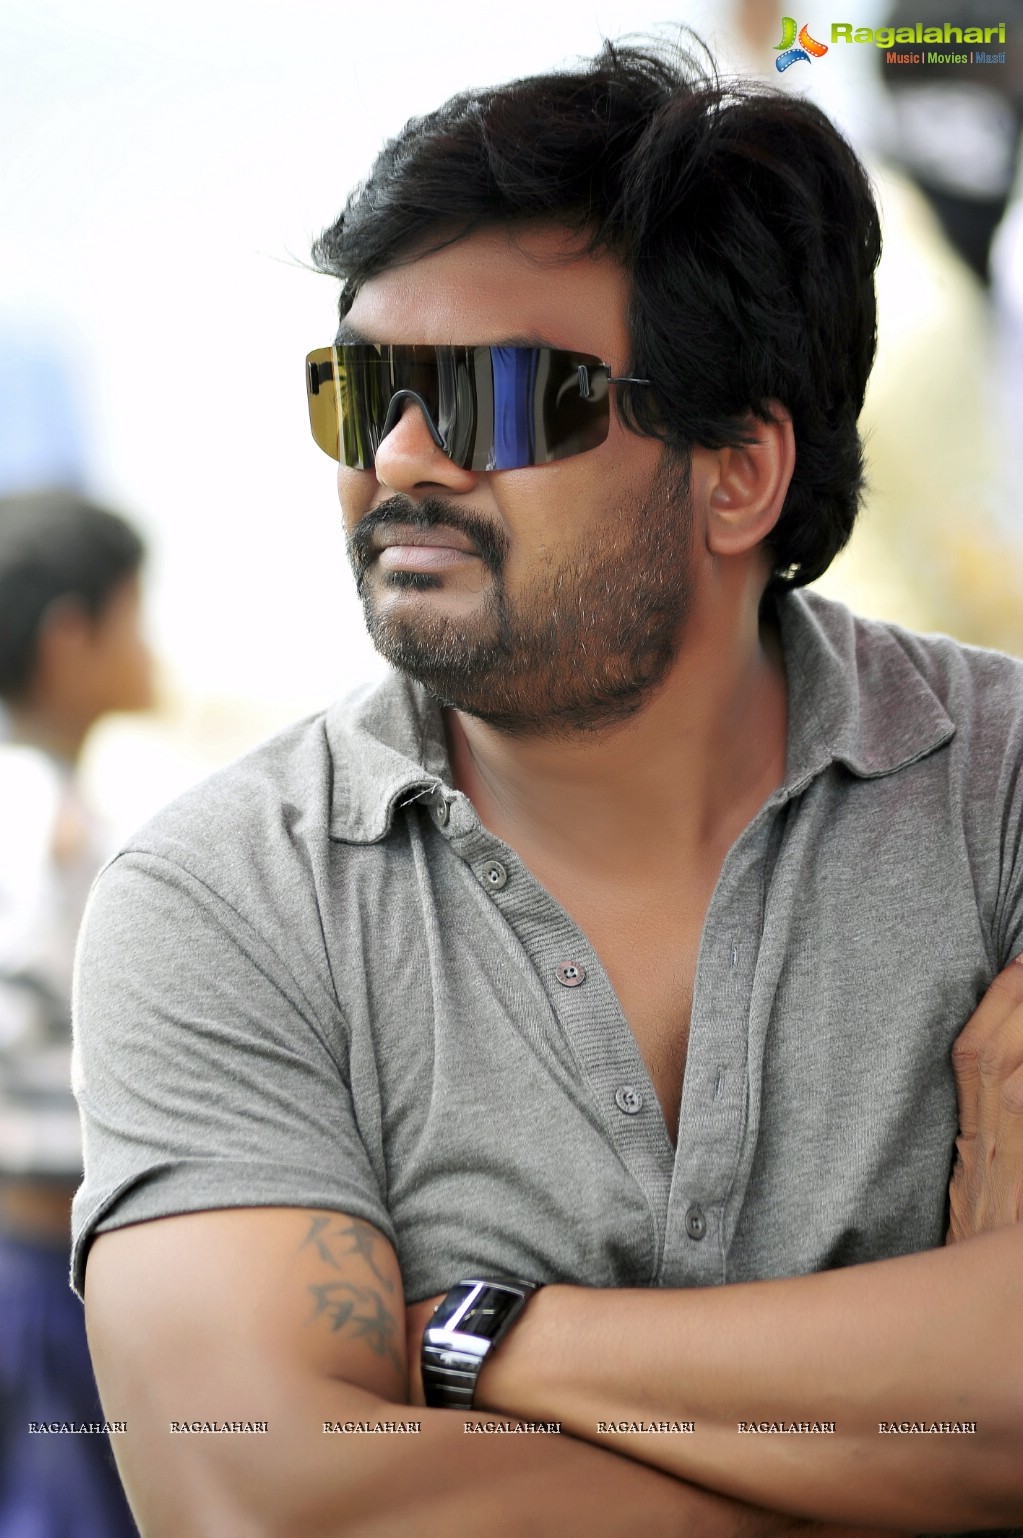 puri jagannadh familypuri jagannadh movies, puri jagannadh twitter, puri jagannadh wife, puri jagannadh son, puri jagannadh caste, puri jagannadh brother, puri jagannadh family, puri jagannadh balakrishna, puri jagannath temple, puri jagannath daughter, puri jagannadh lighter, puri jagannath house, puri jagannadh new movie, puri jagannadh dialogues, puri jagannadh family photos, puri jagannadh net worth, puri jagannadh hits and flops, puri jagannadh images, puri jagannadh all movies, puri jagannadh height